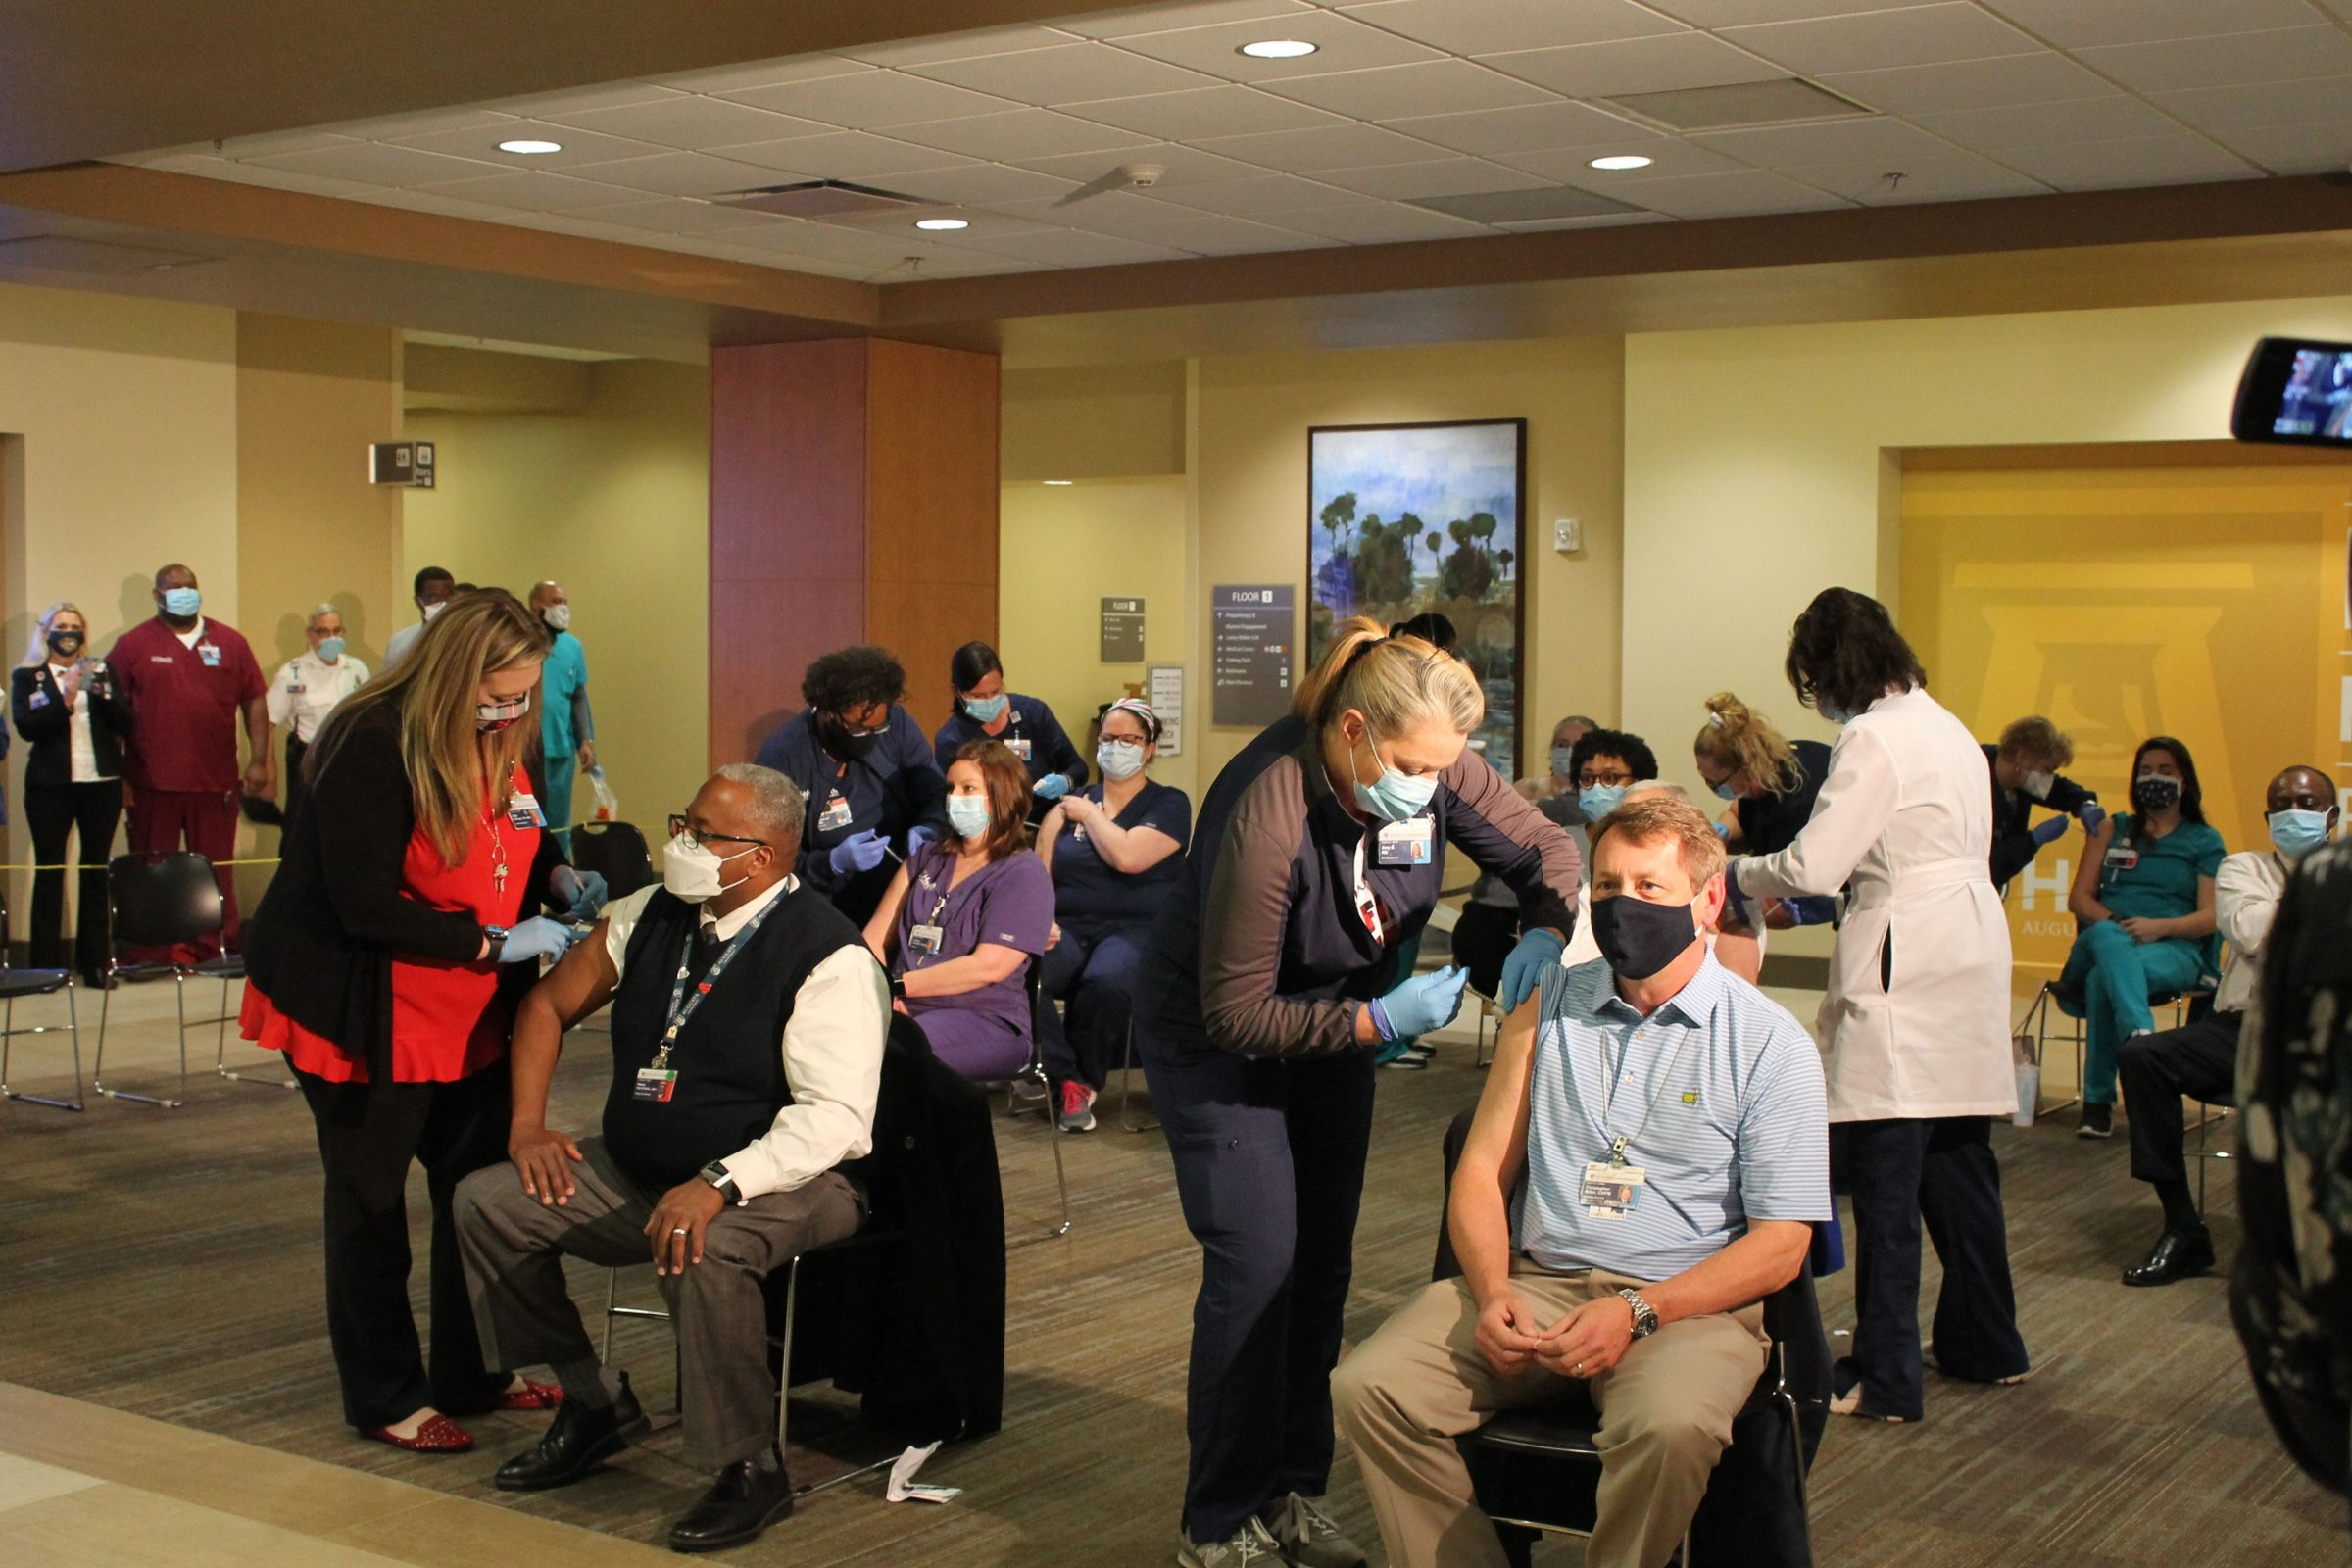 Augusta University Health administers first COVID-19 vaccine to frontline caregivers